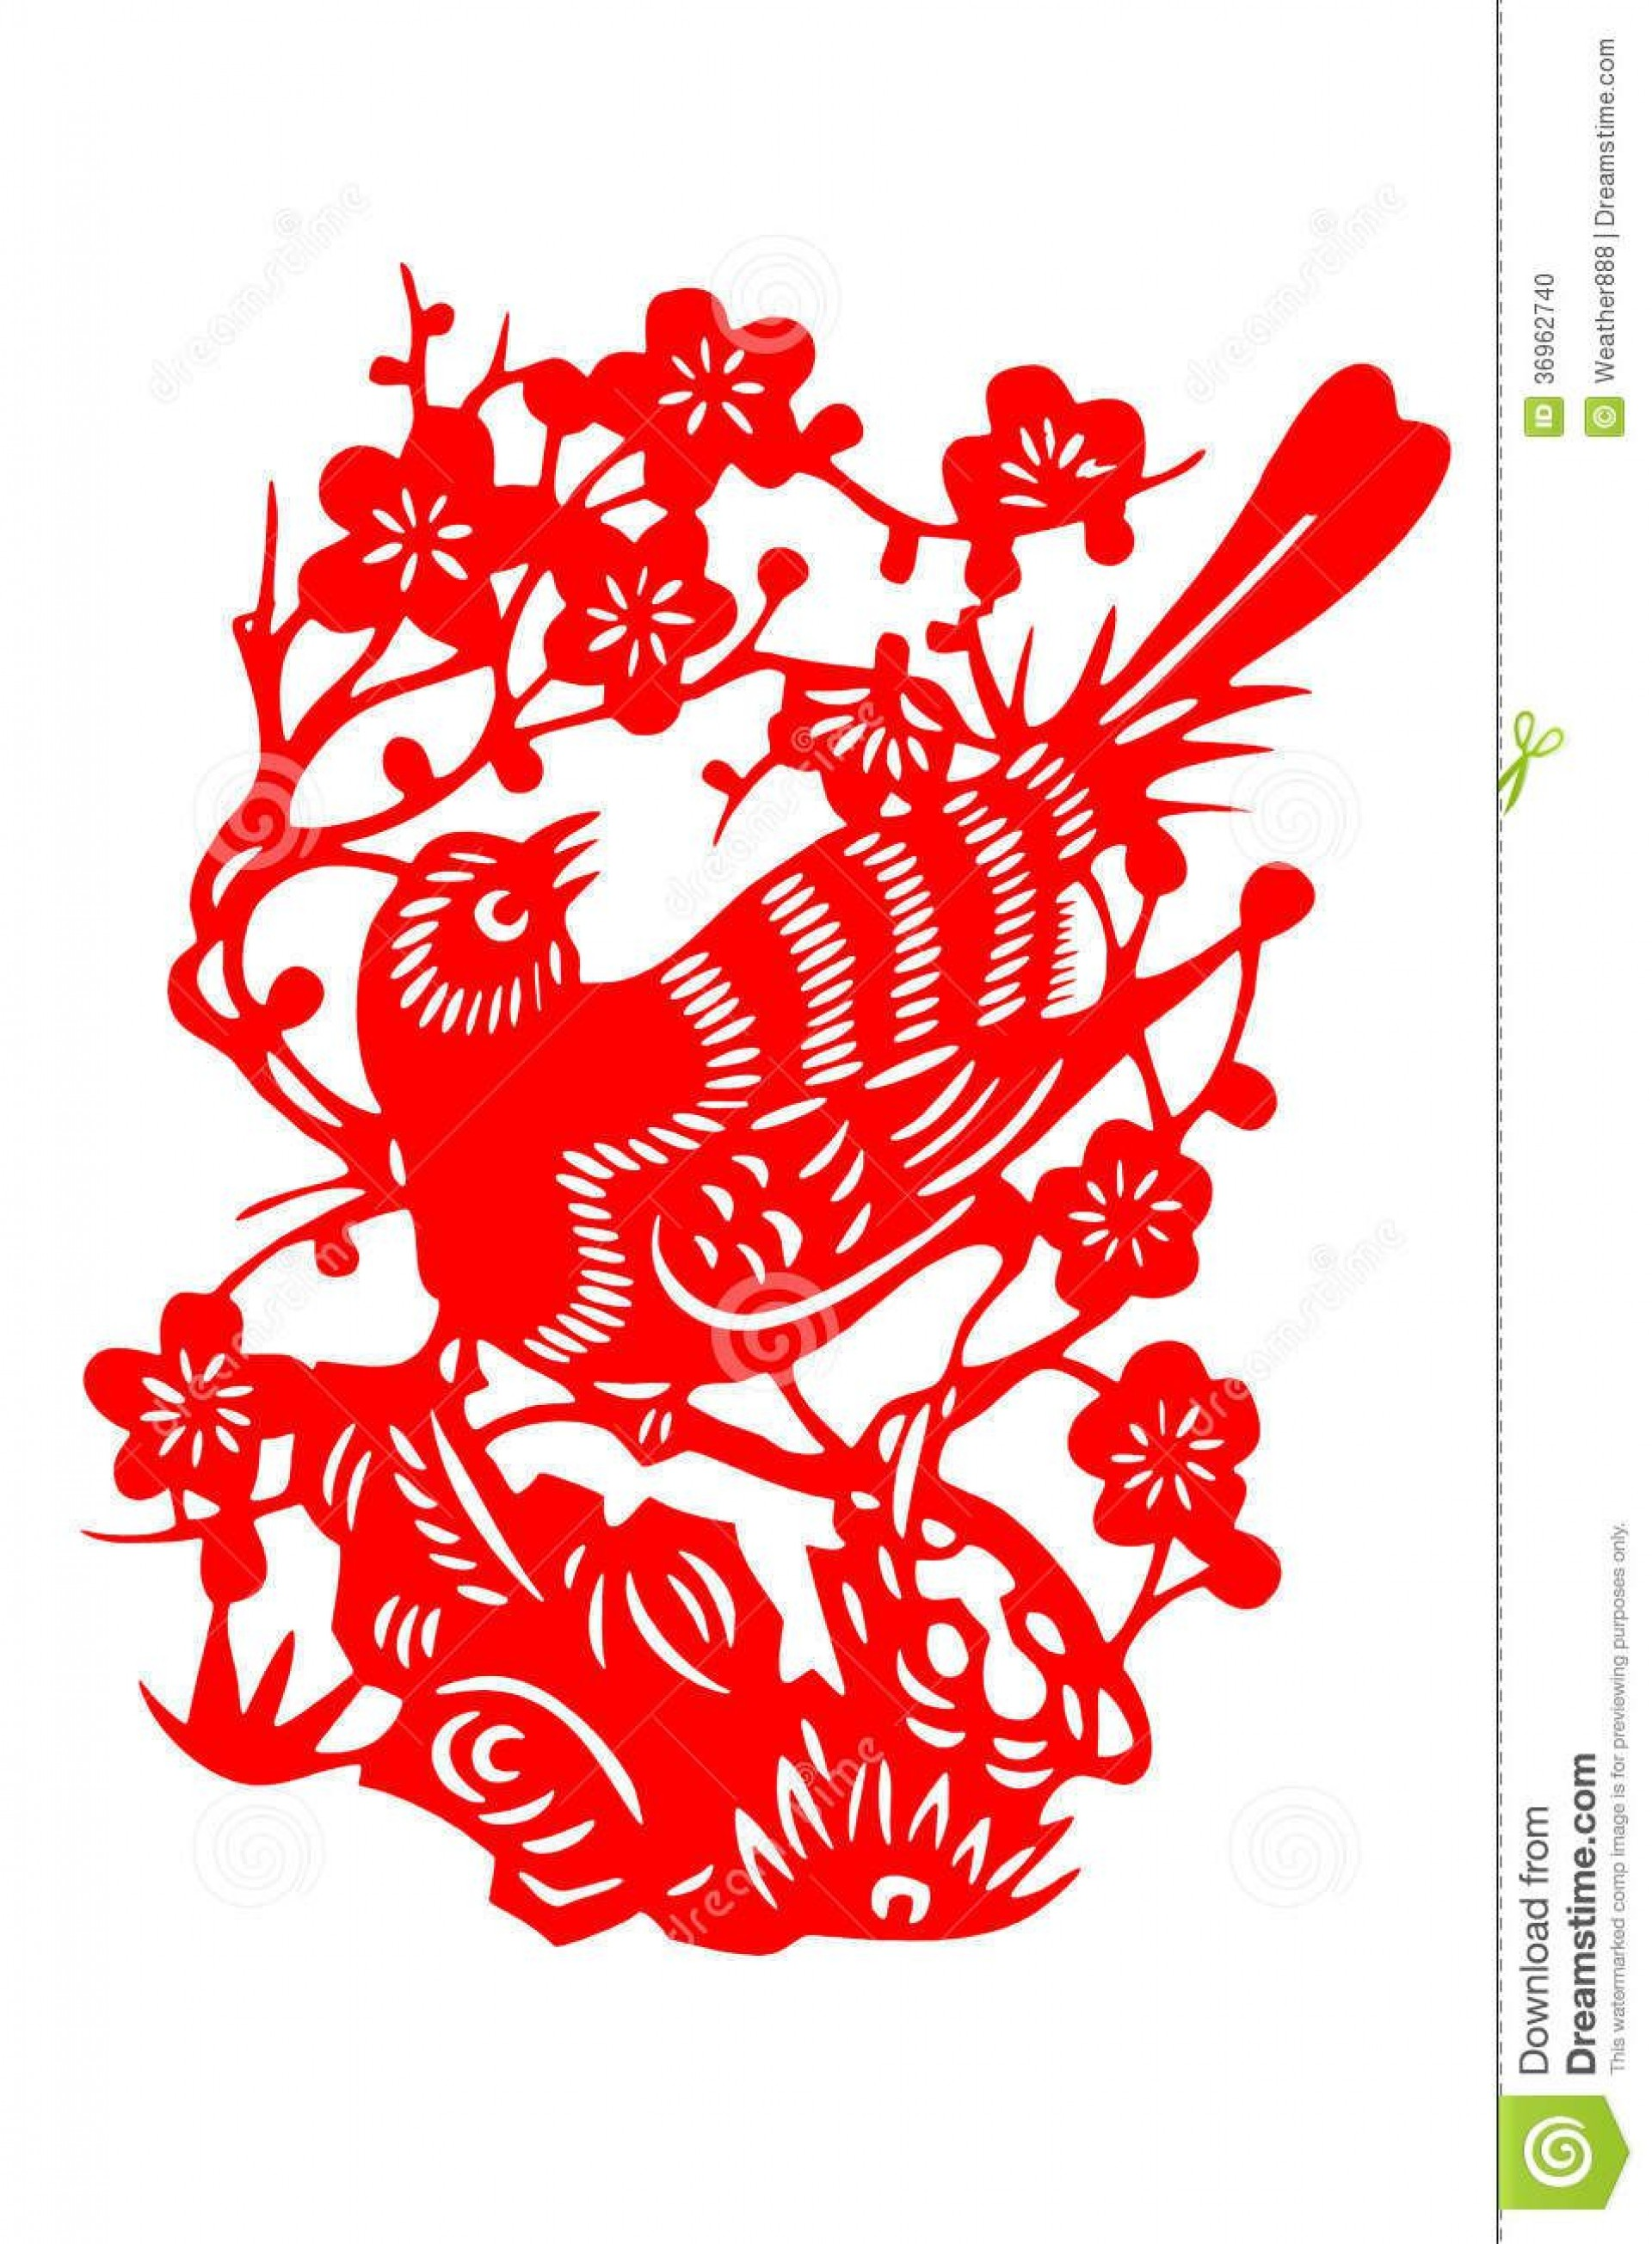 008 Top Chinese Paper Cut Template Concept 1920